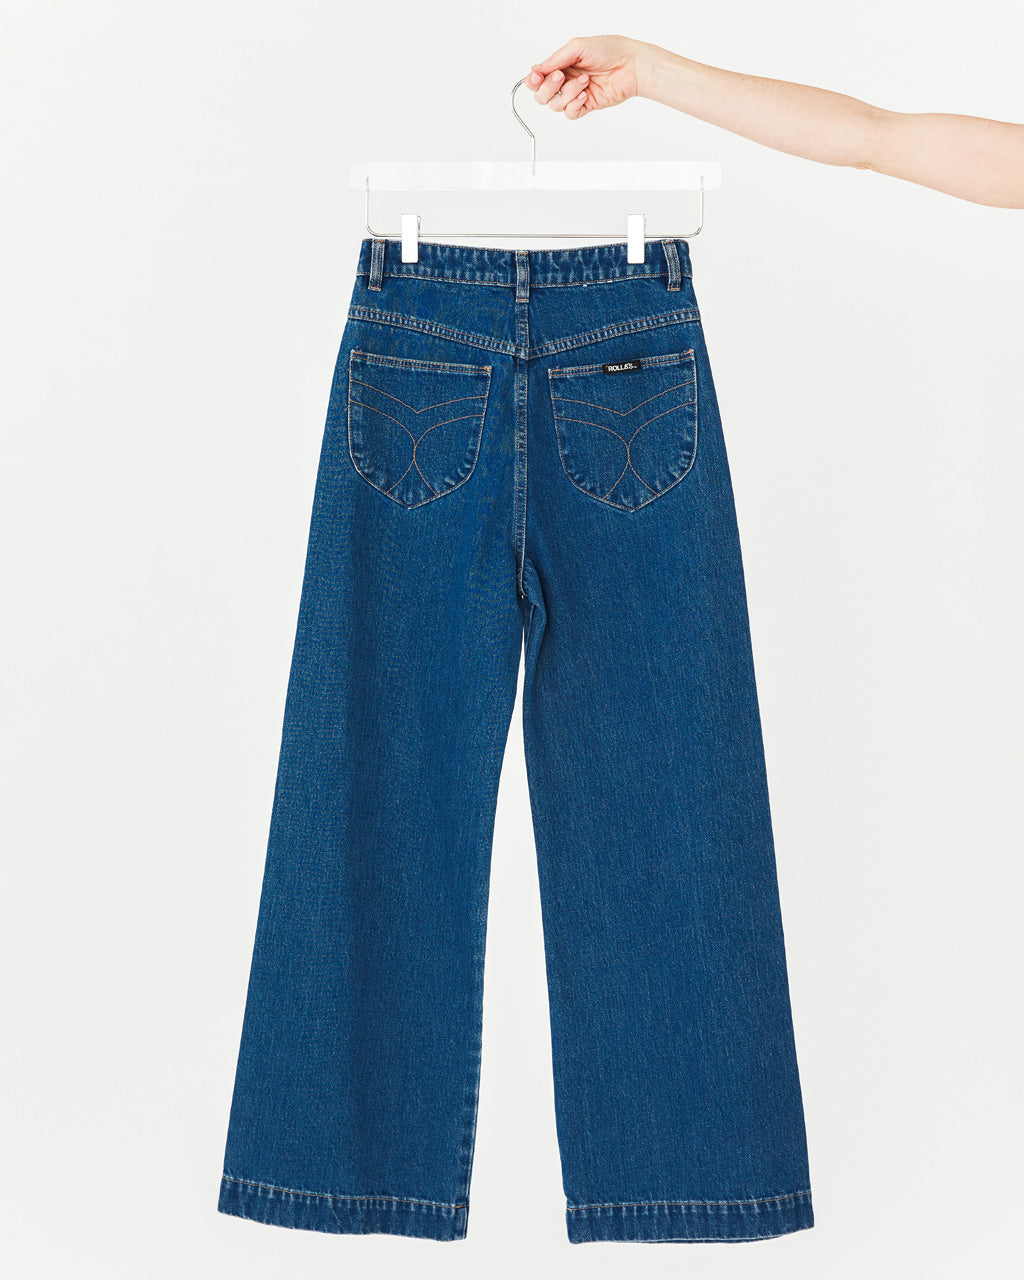 Indigo blue jeans with front patch pockets, high waist, wide leg and signature rolla's stitching